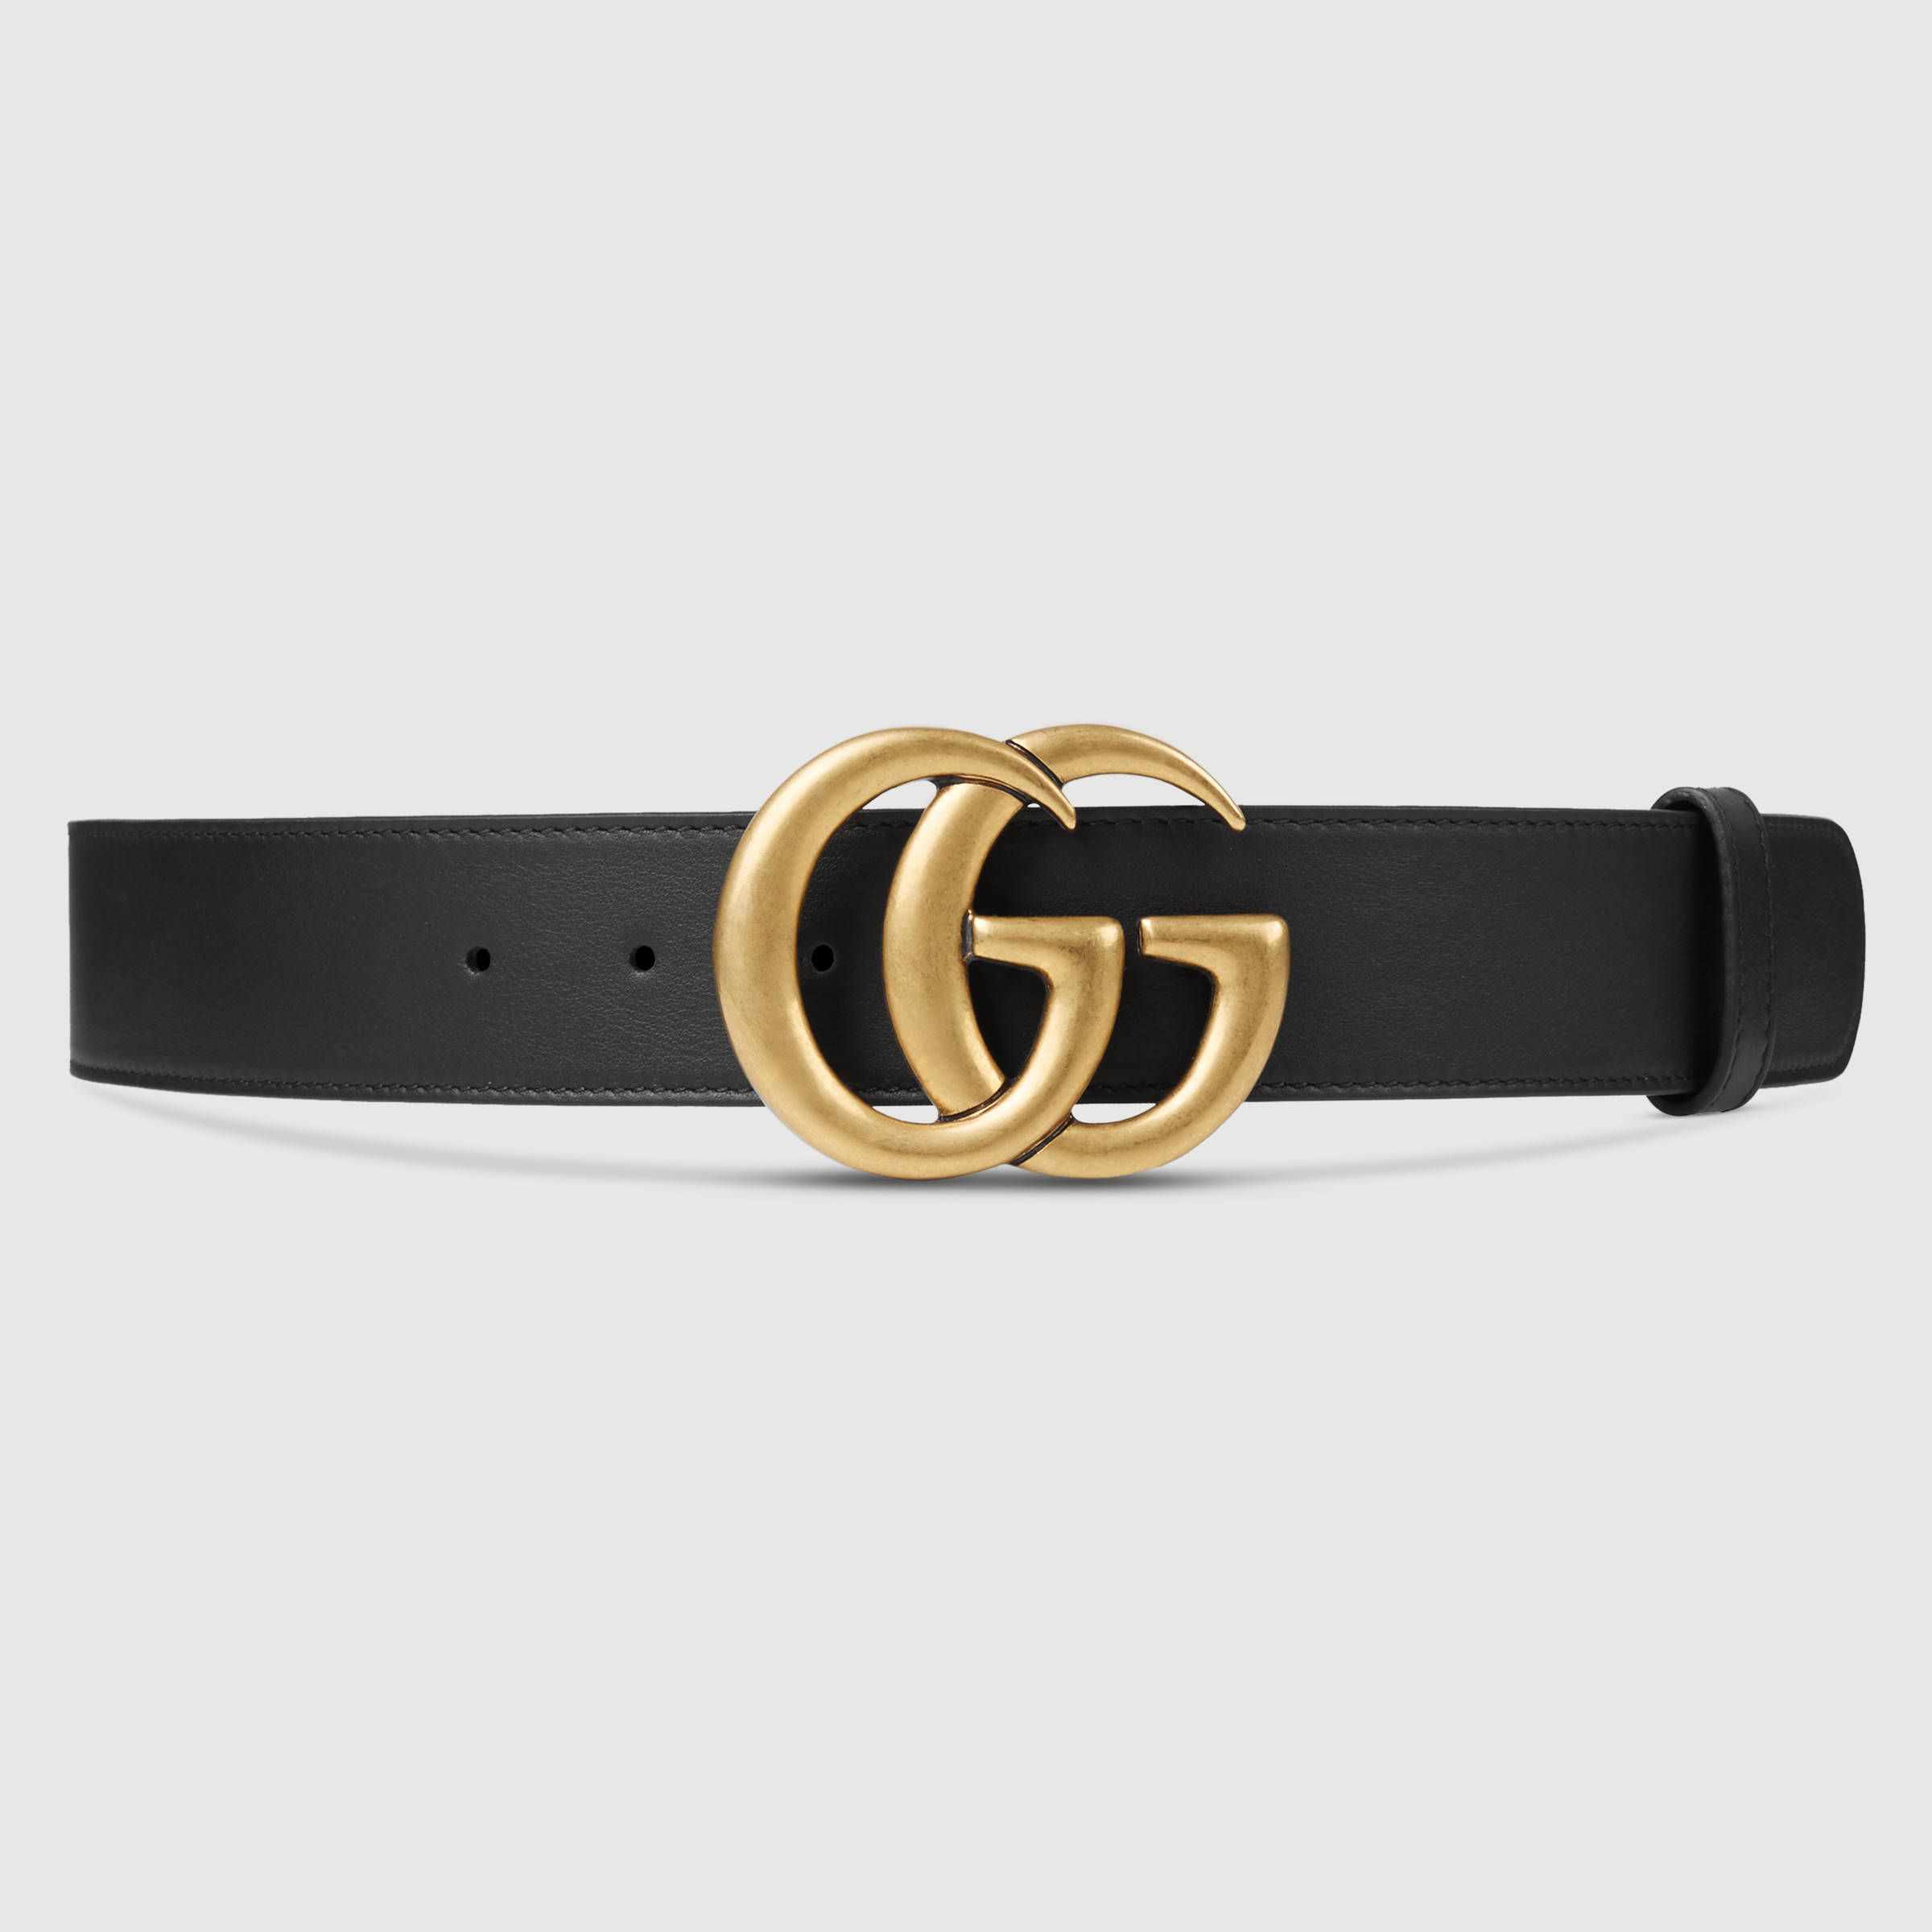 4e9013cdf Gucci Women - Gucci Black Leather belt with double G buckle - $420.00